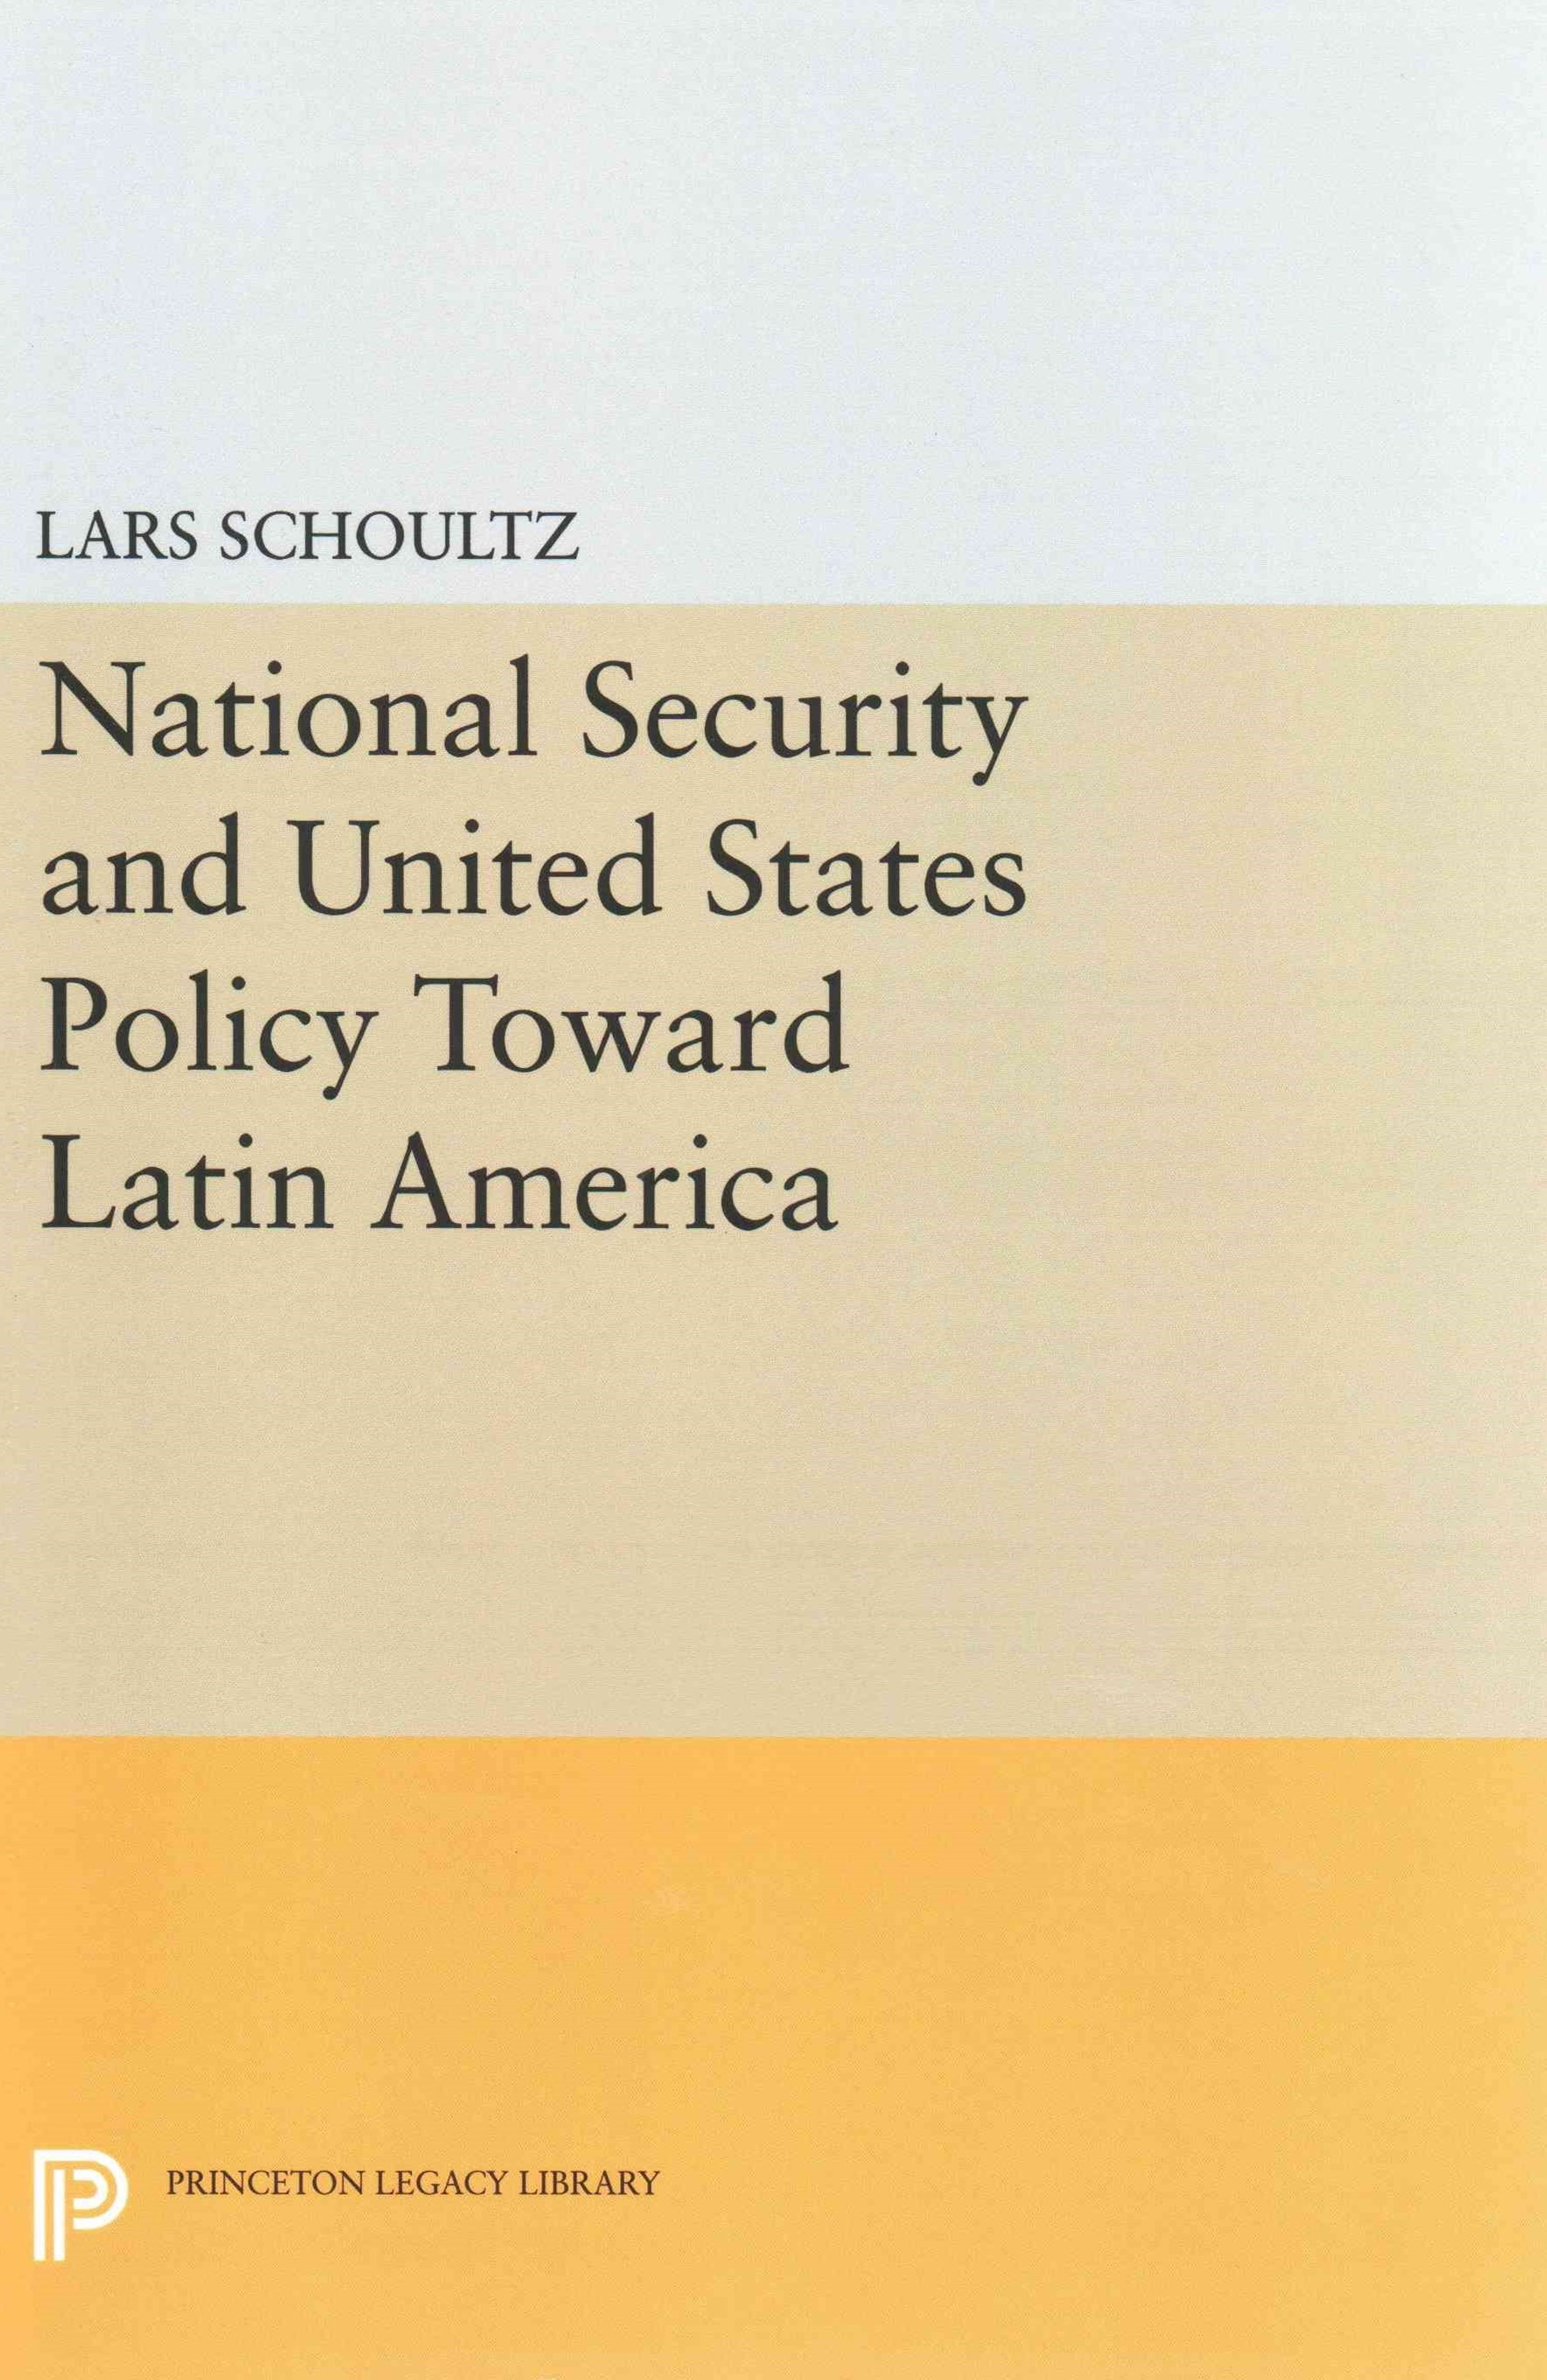 National Security and United States Policy Toward Latin America